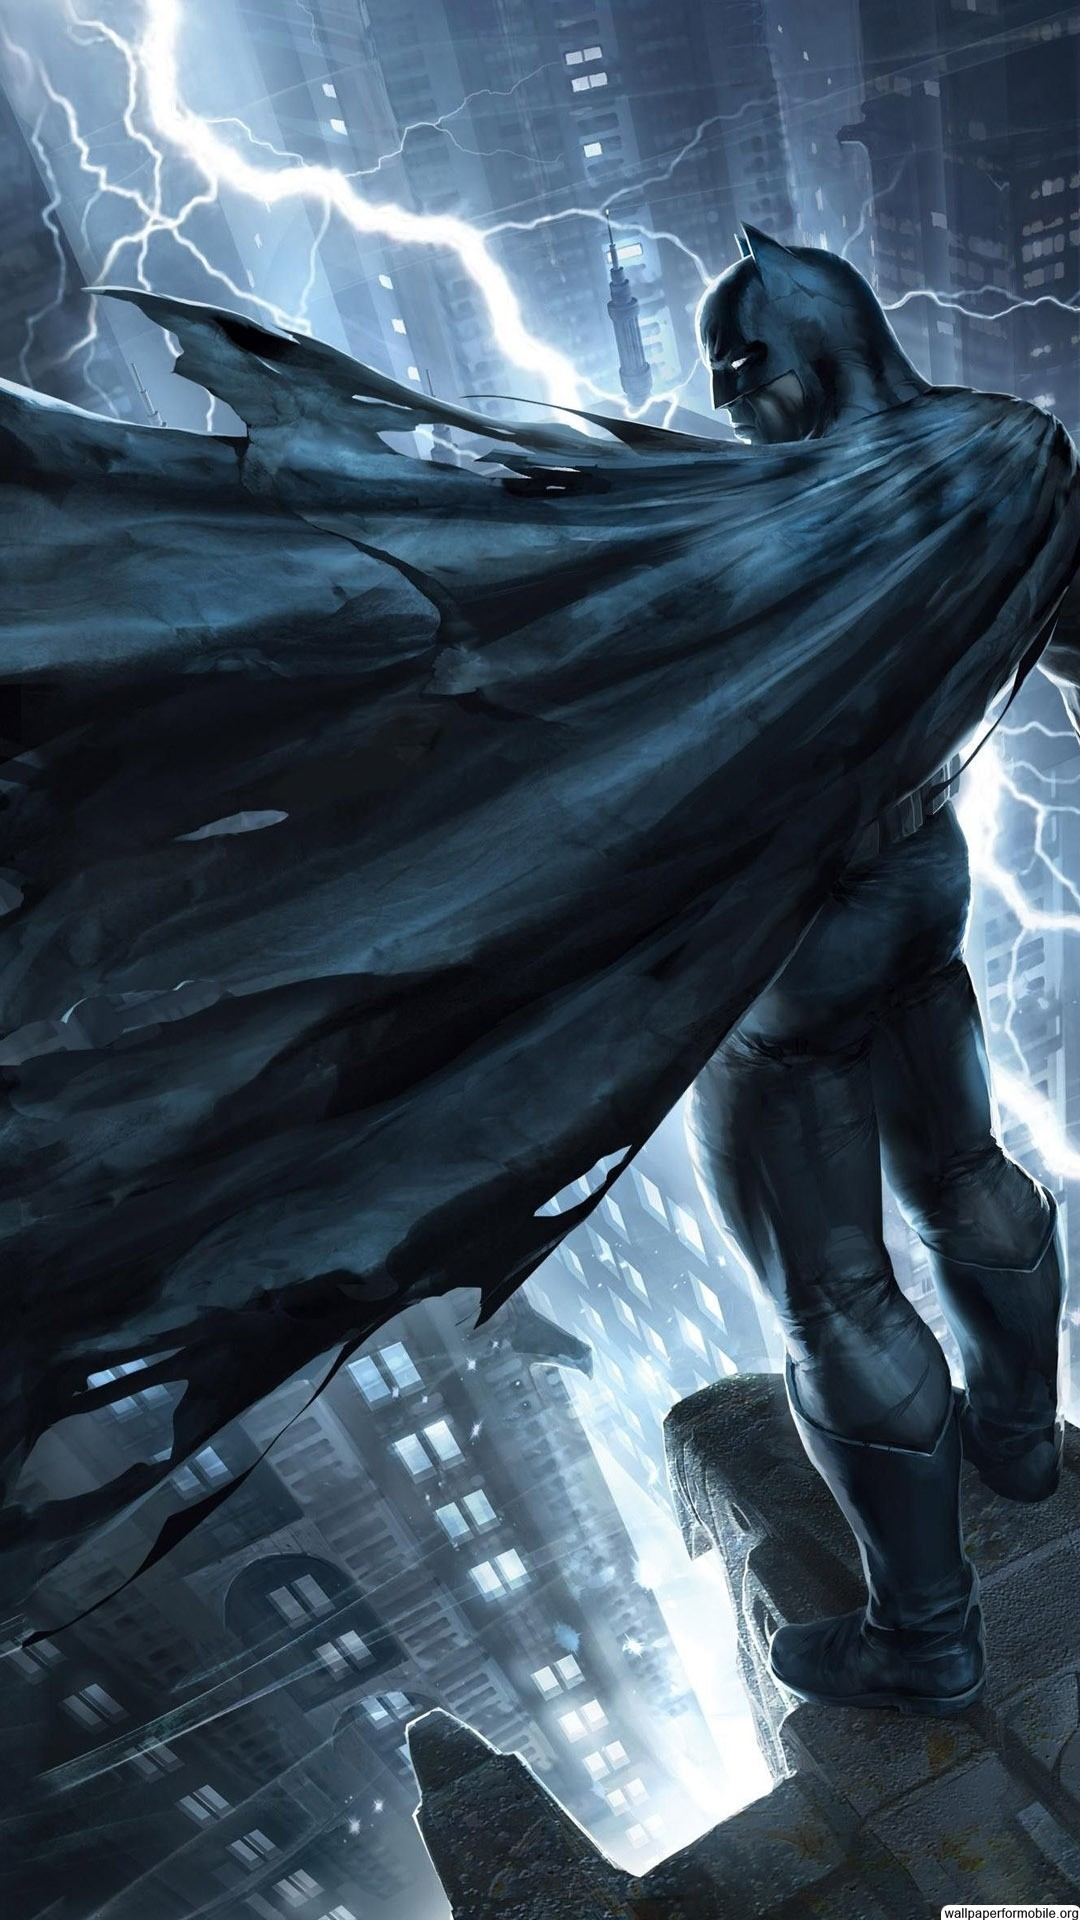 Batman Wallpaper for Iphone – Visit to grab an amazing super hero shirt now  on sale!